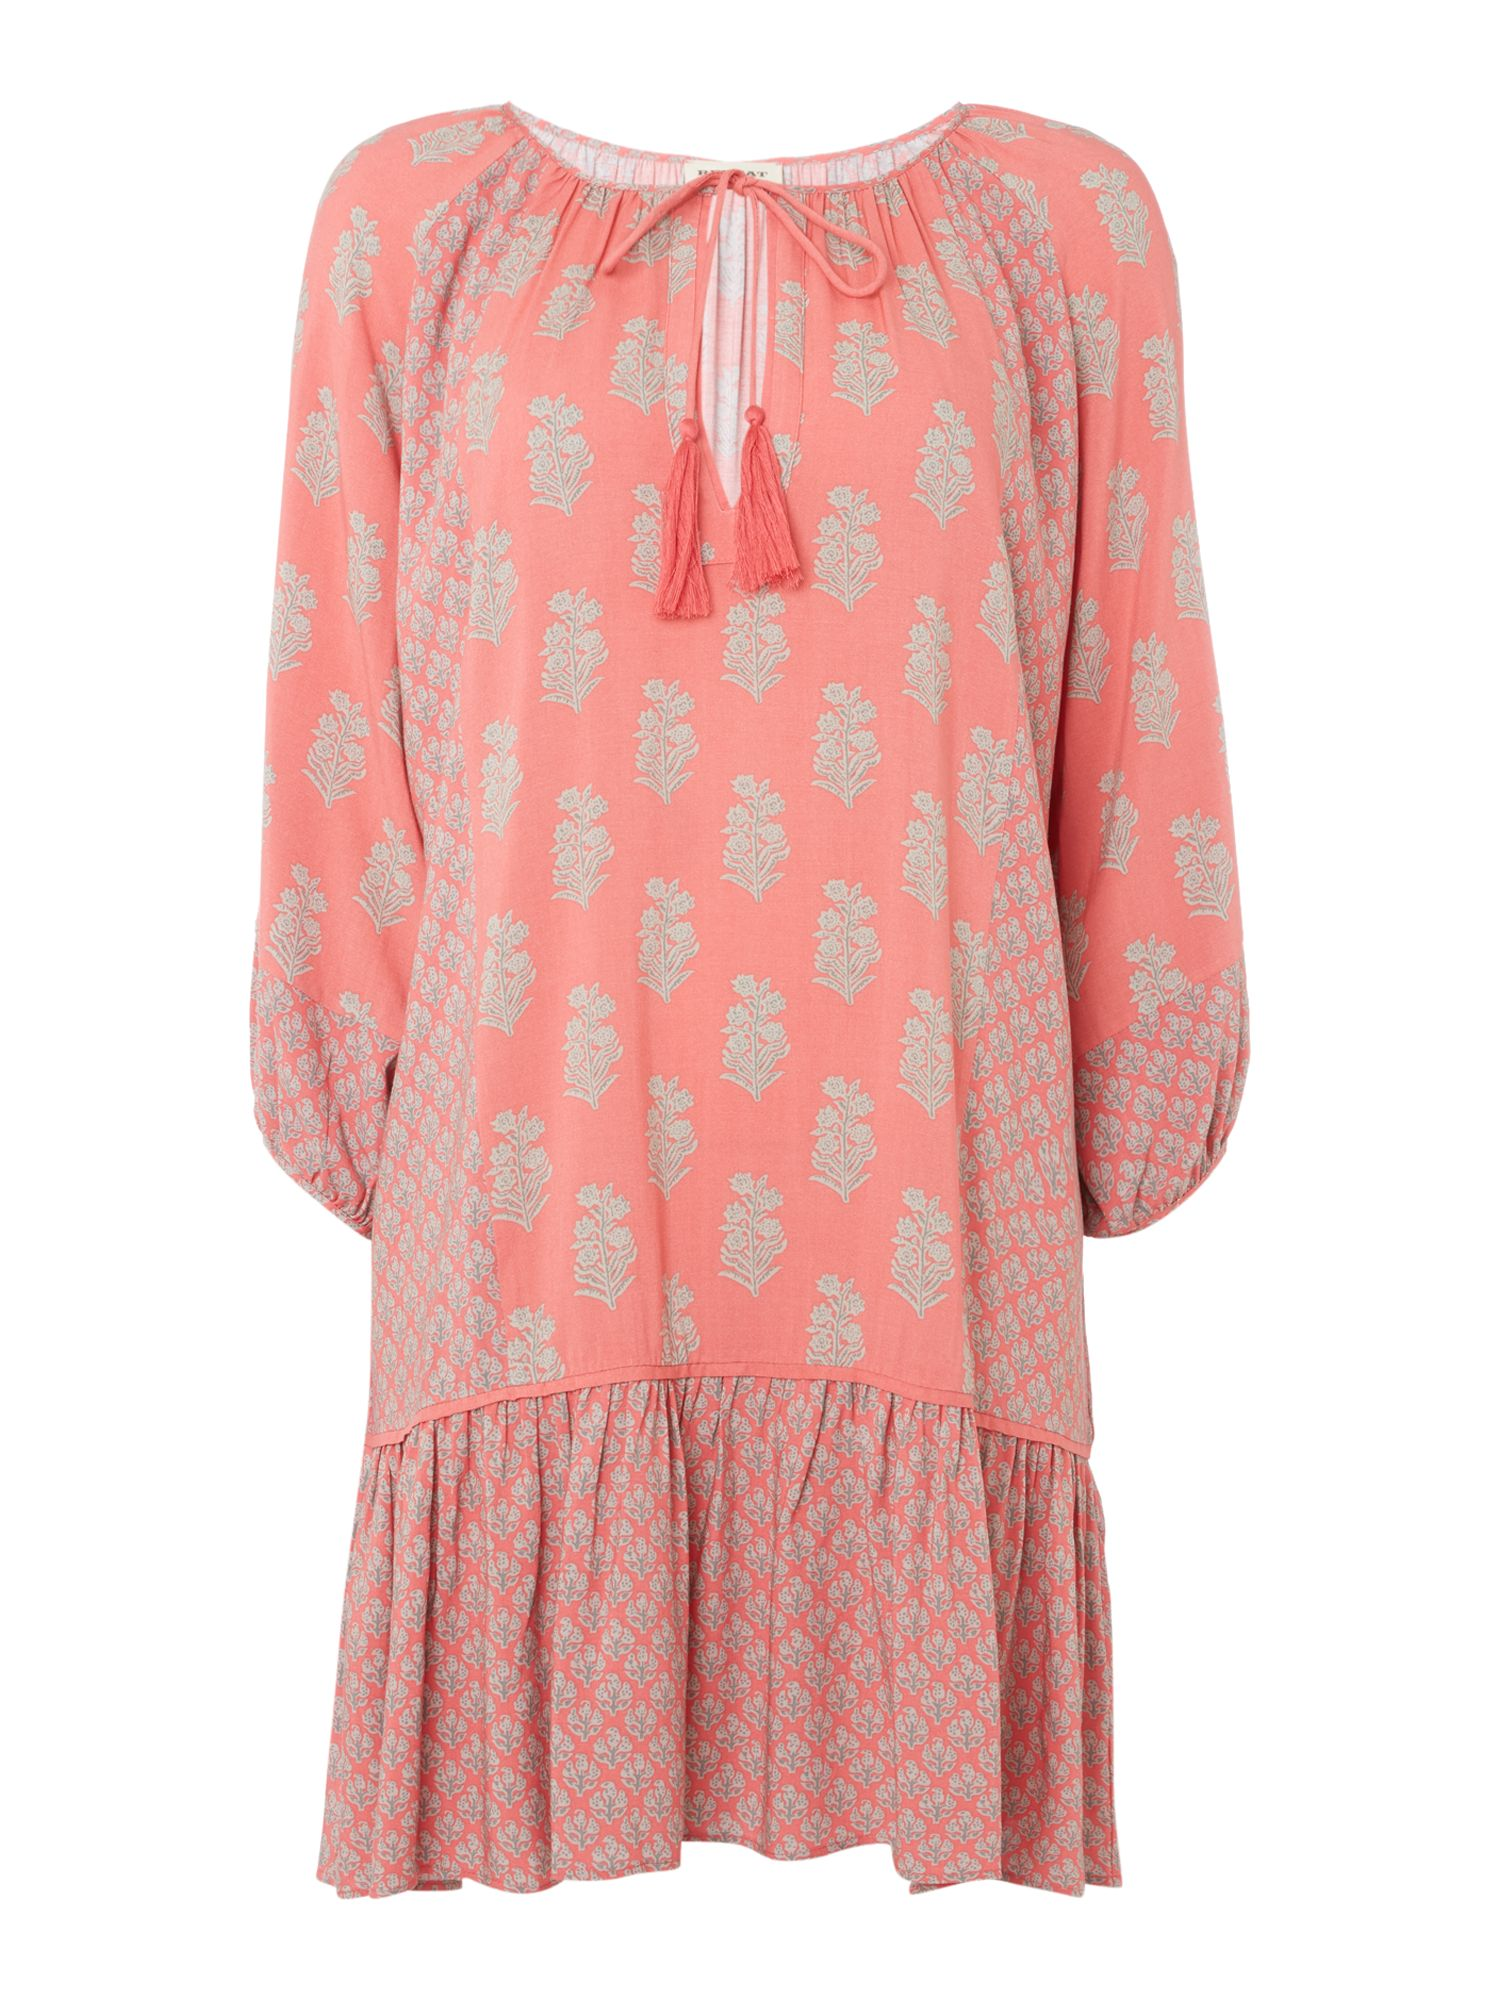 Repeat Cashmere Floral print dress, Red